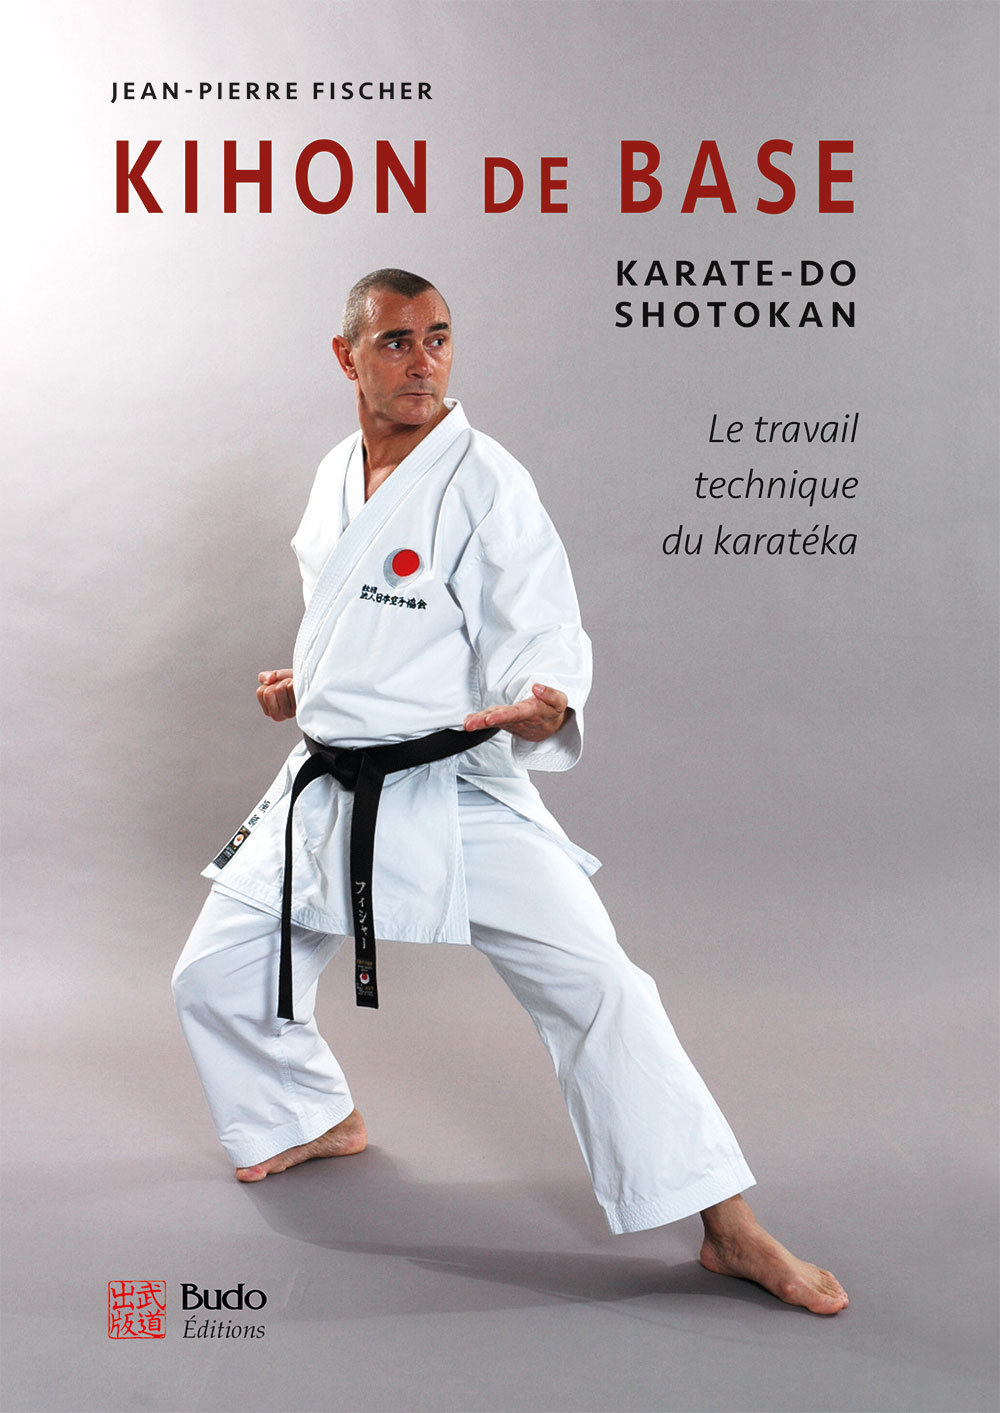 KIHON DE BASE KARATE-DO SHOTOKAN